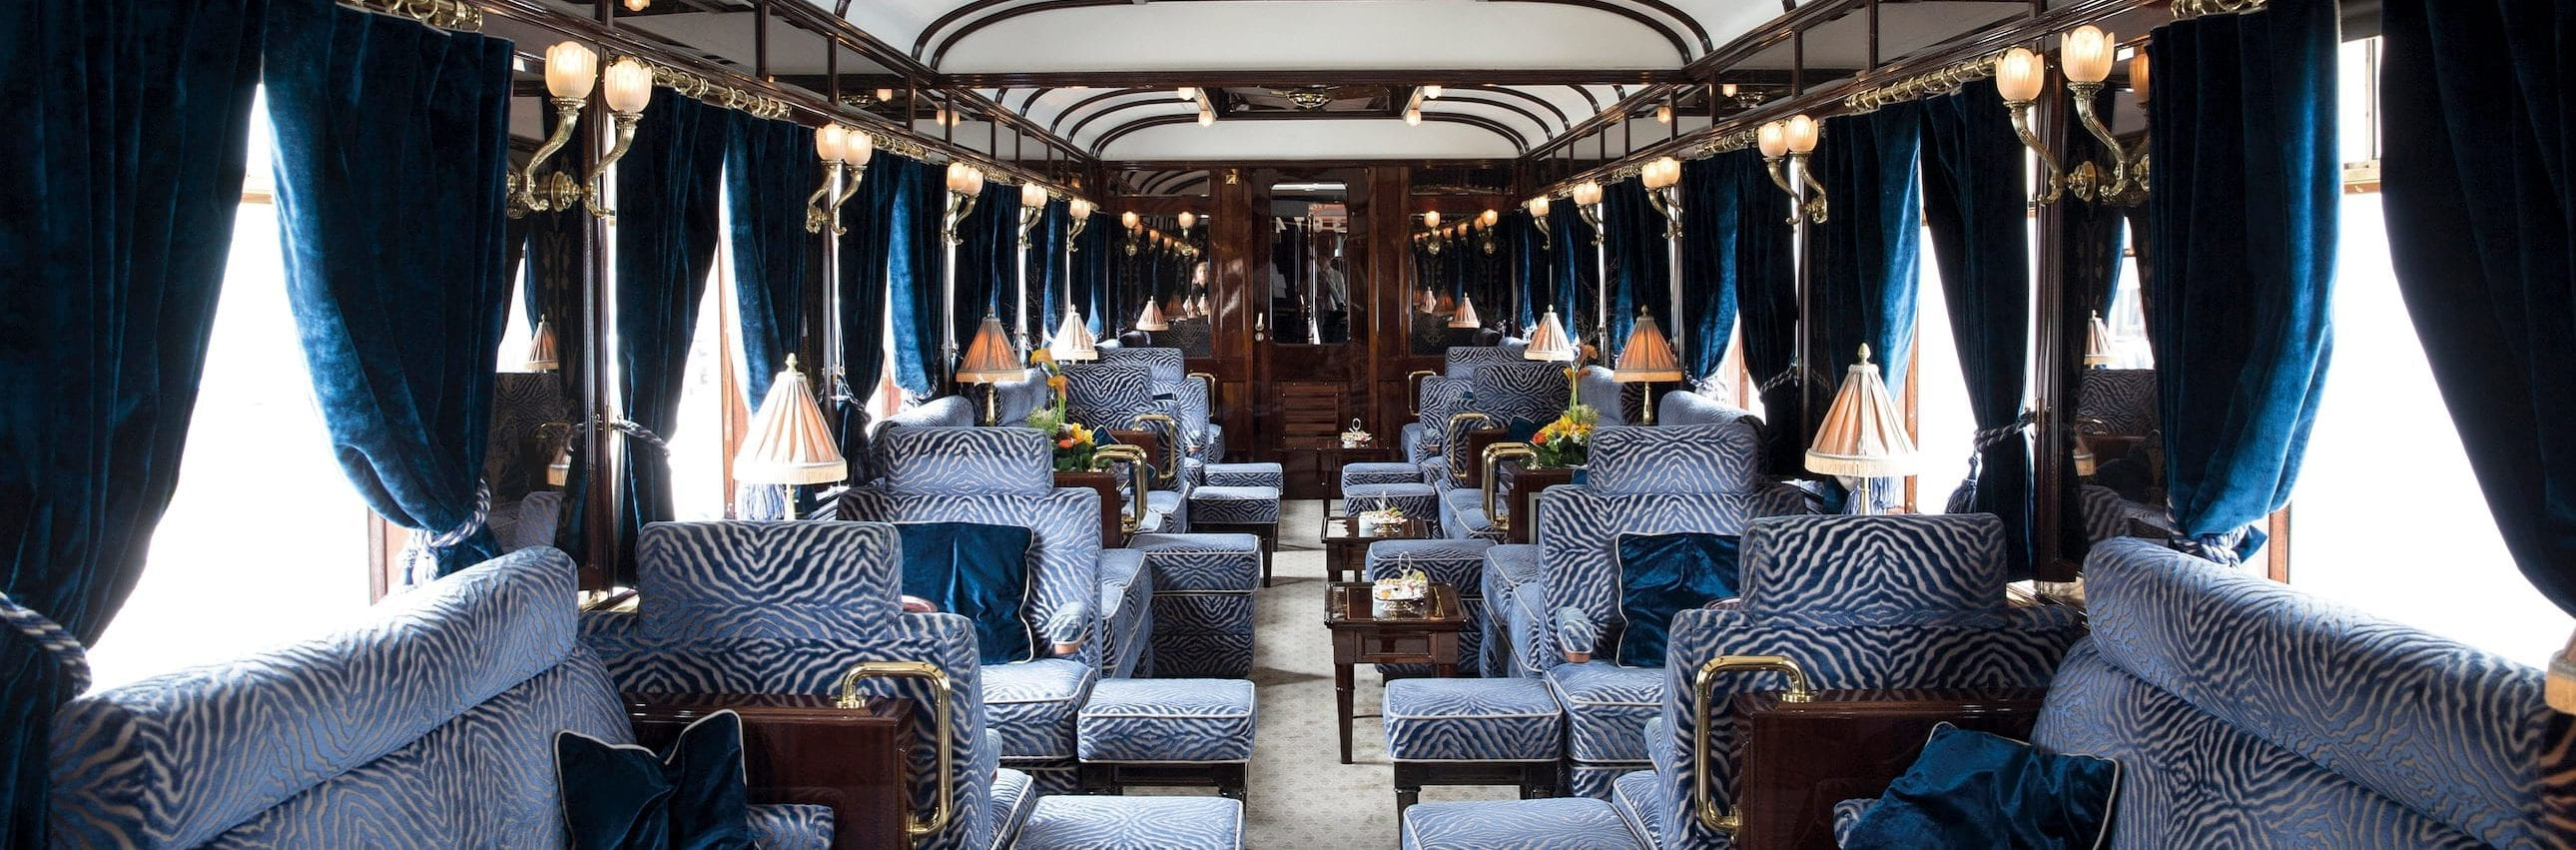 LGBTQ Group Trip: The Venice Simplon-Orient-Express 2021 | Out Of Office